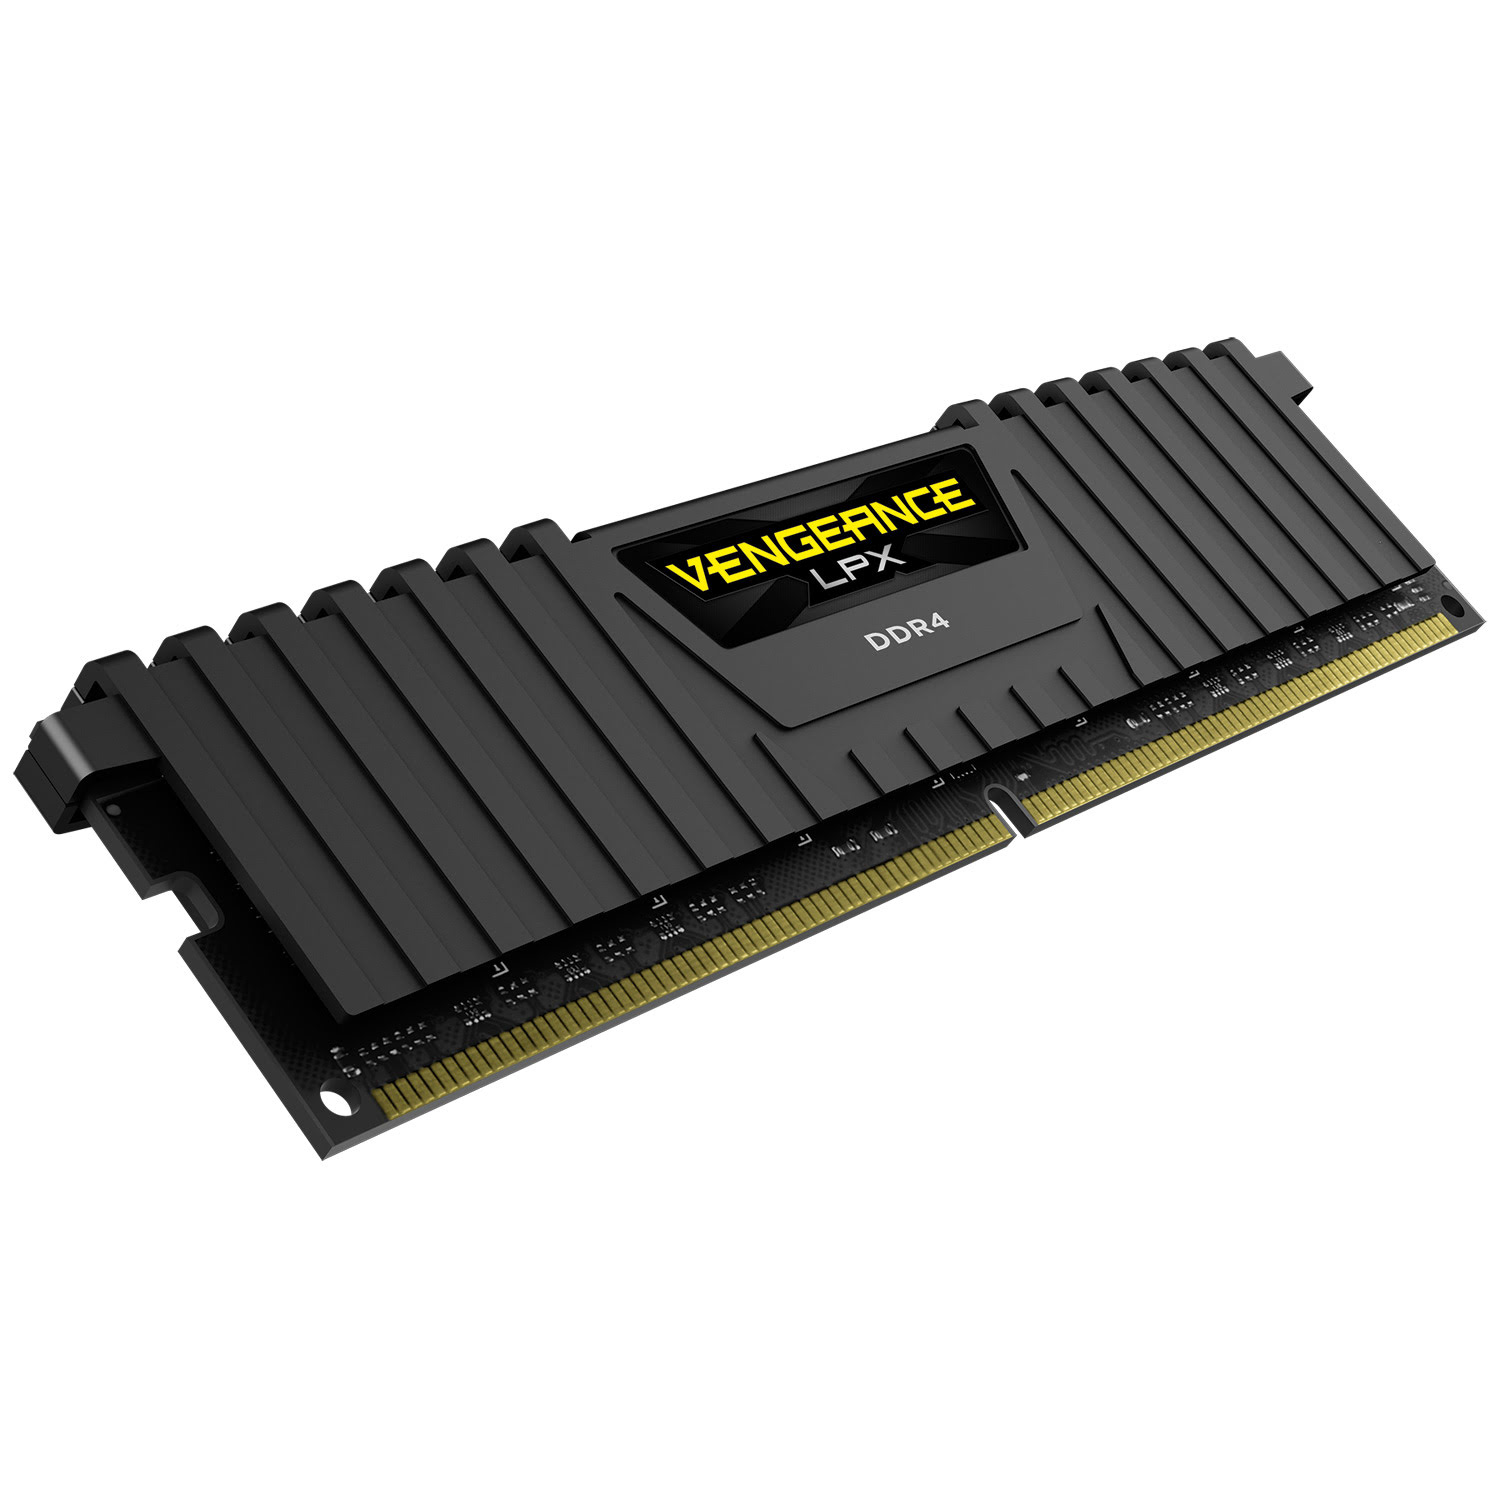 Corsair Vengeance LPX Black Heat spreader  16Go DDR4 2666MHz PC21300 - Mémoire PC Corsair sur Cybertek.fr - 2